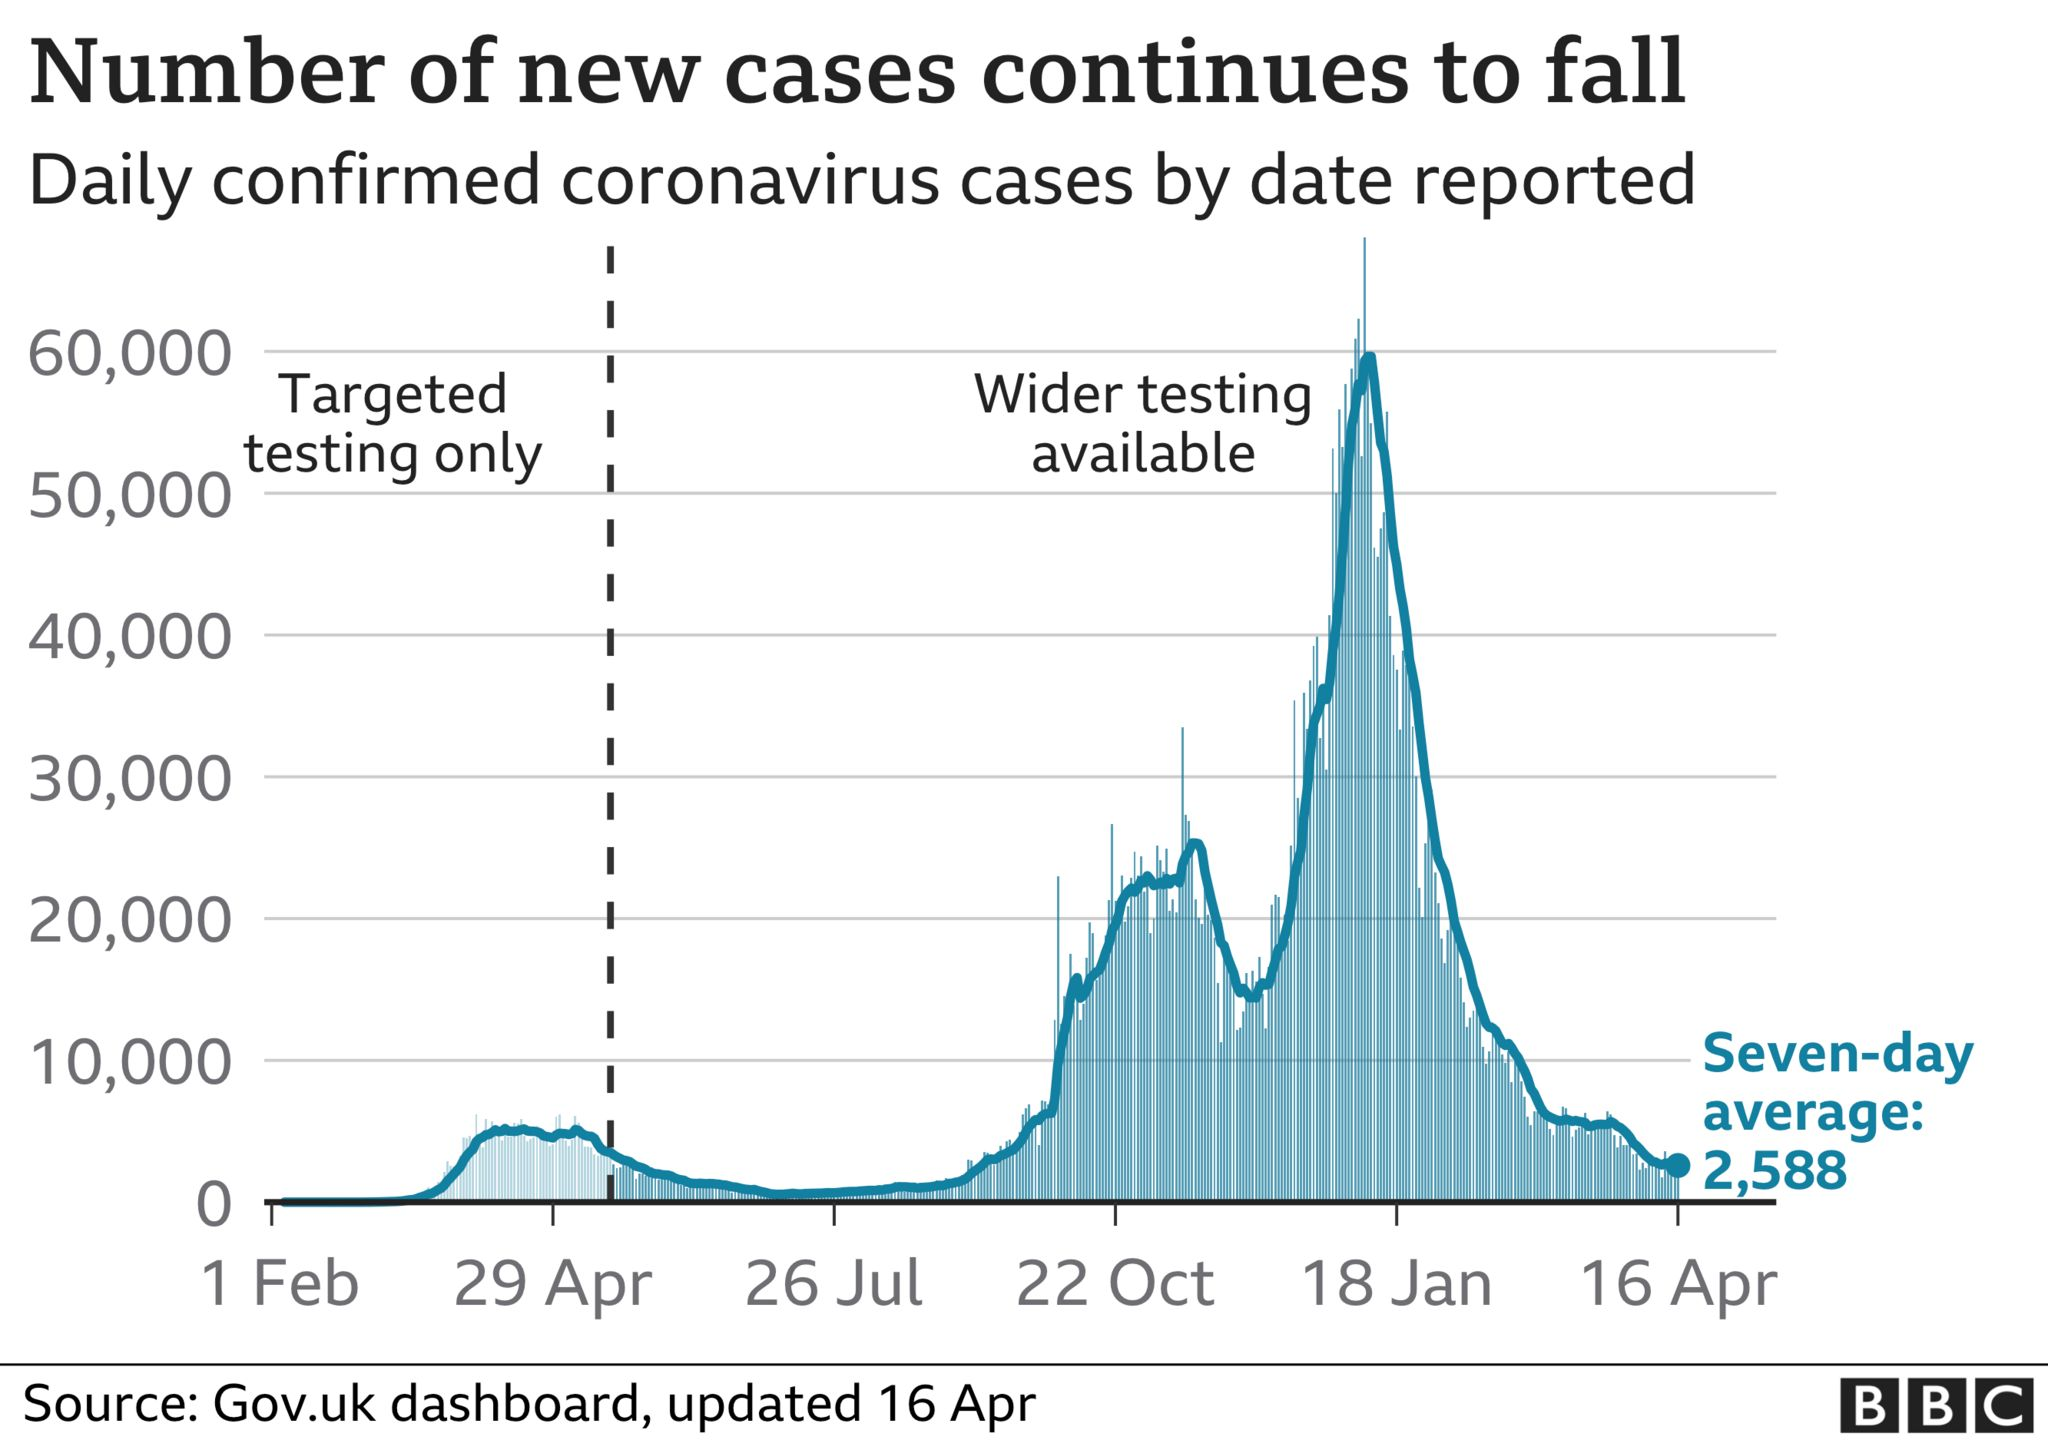 Graph showing cases in UK continue to fall